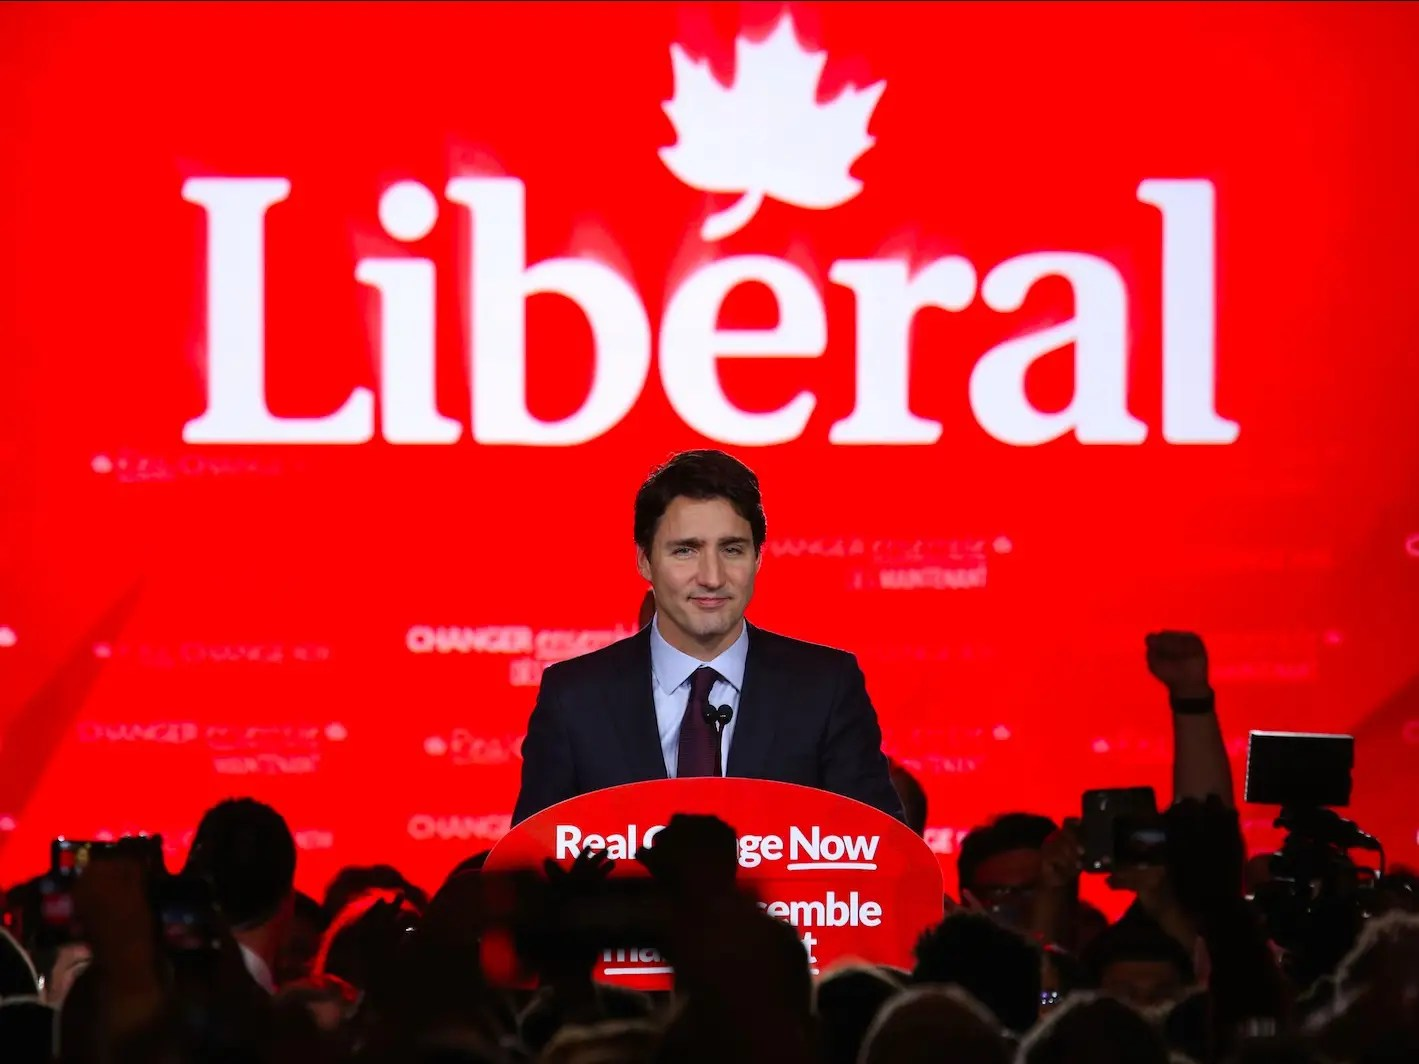 Big Changes Coming To Canada Under New Liberal Government